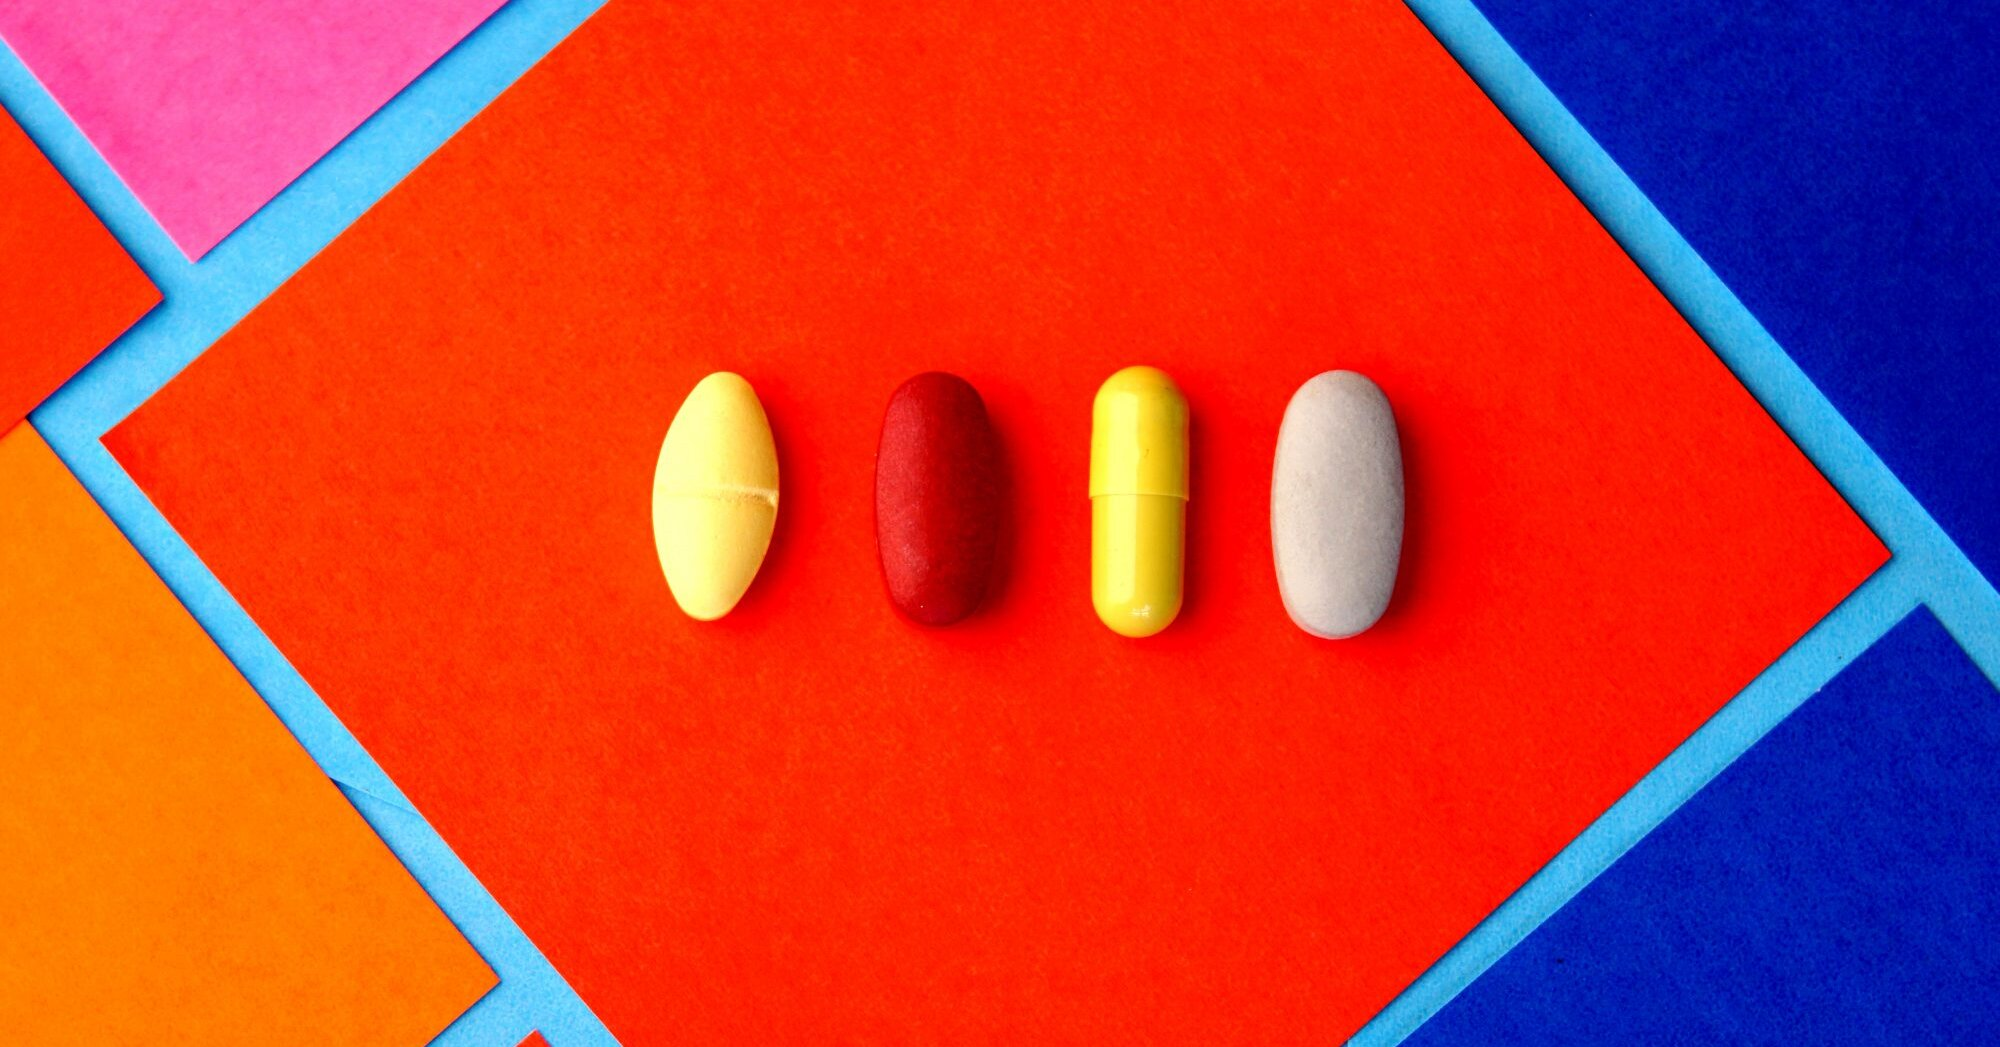 The Supplements That Help Your Fitness (and the Ones That Don't)